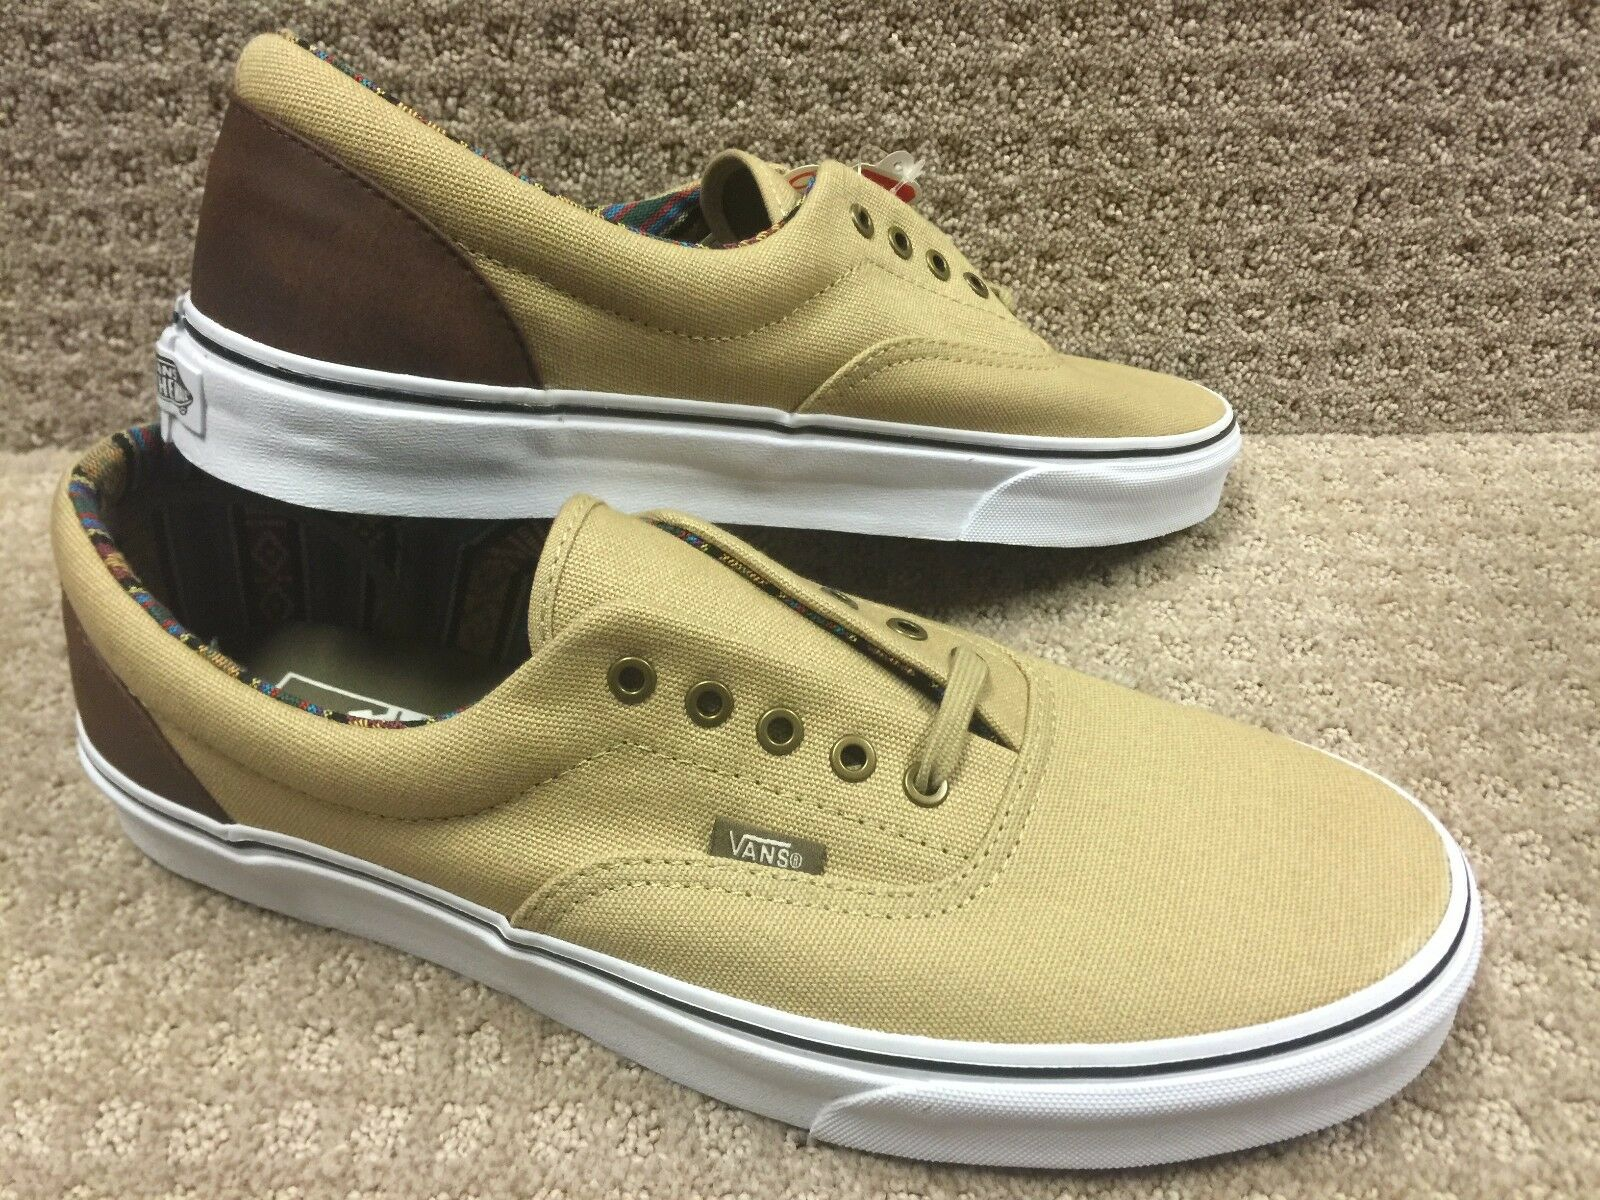 Vans Men's shoes  Era   -- (Indo Pacific) Khaki TrWht True White